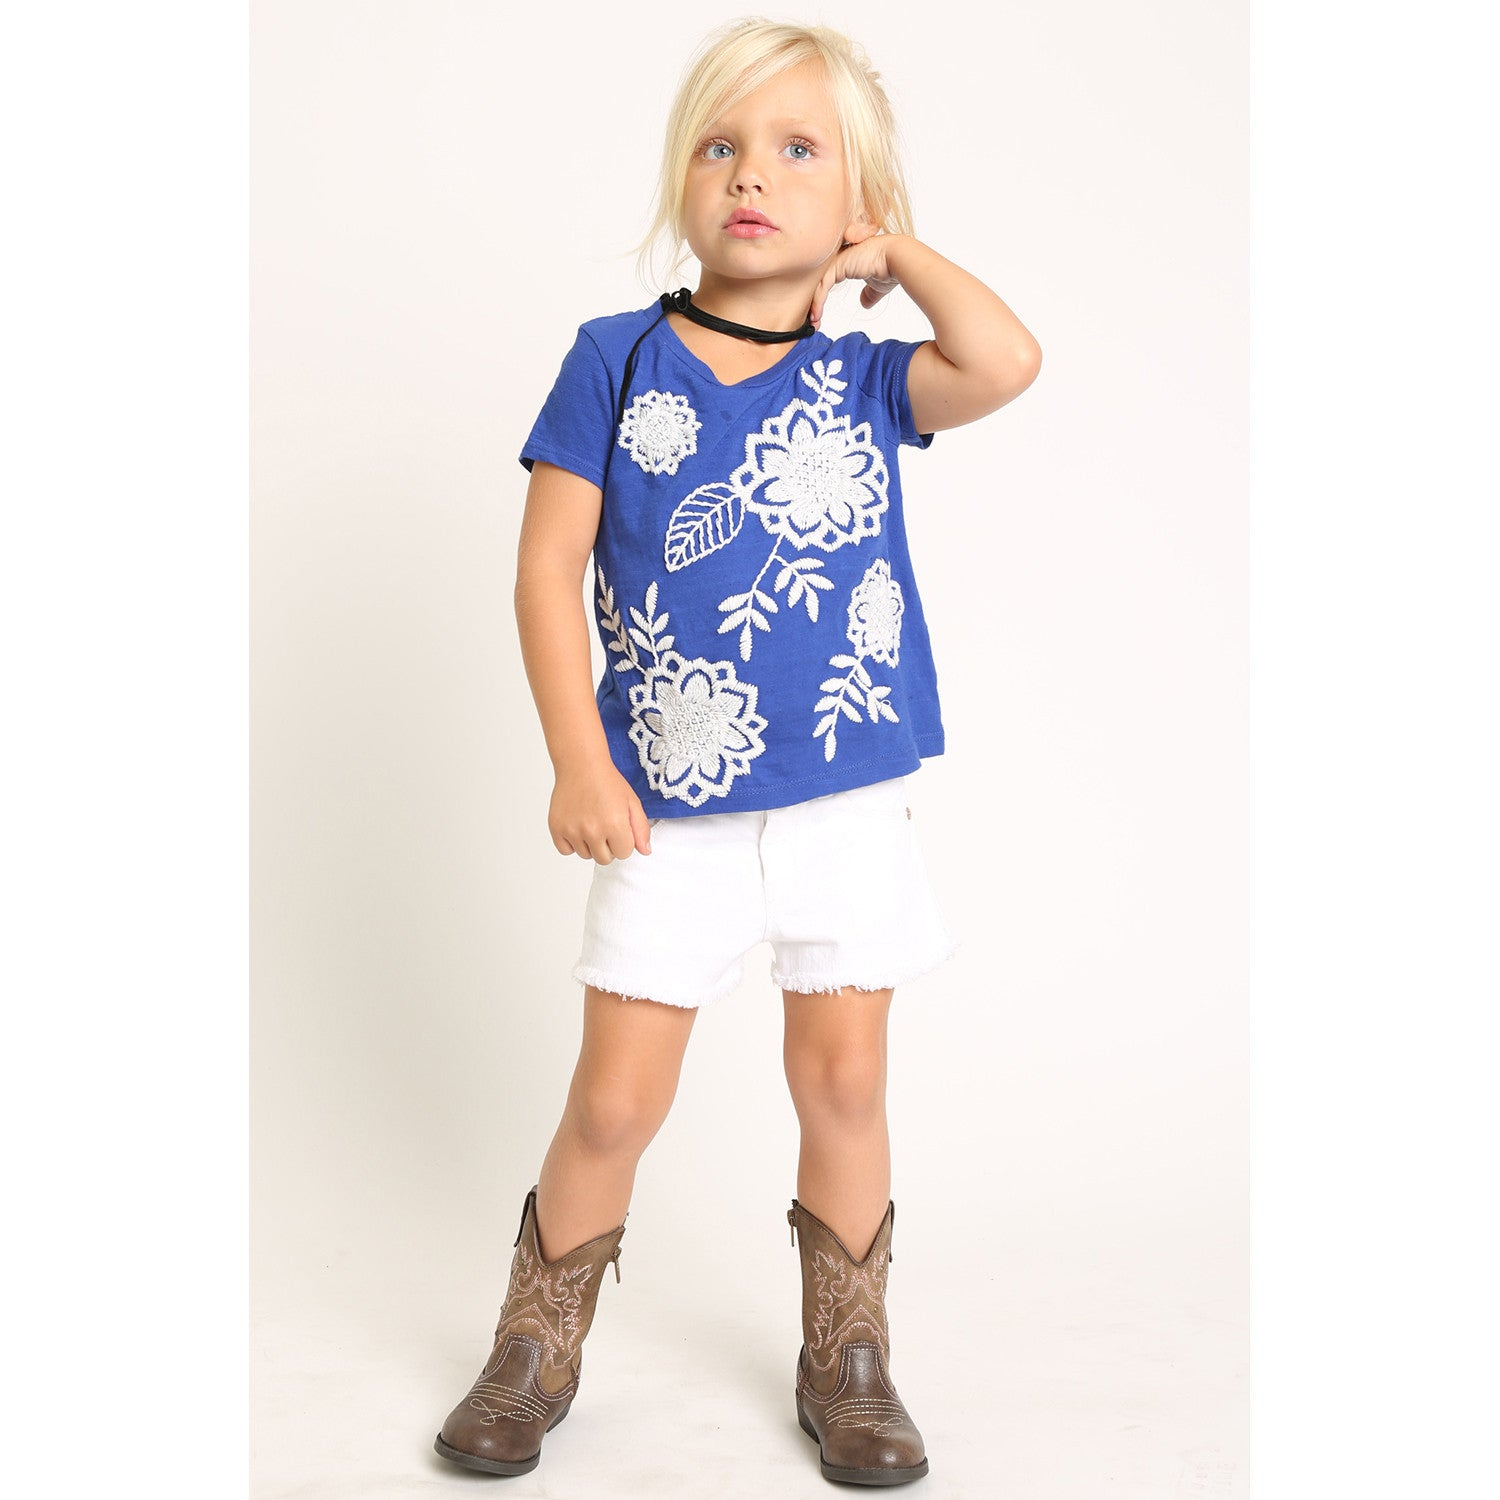 Floral Embroidery Short Sleeve T-Shirt for Girls